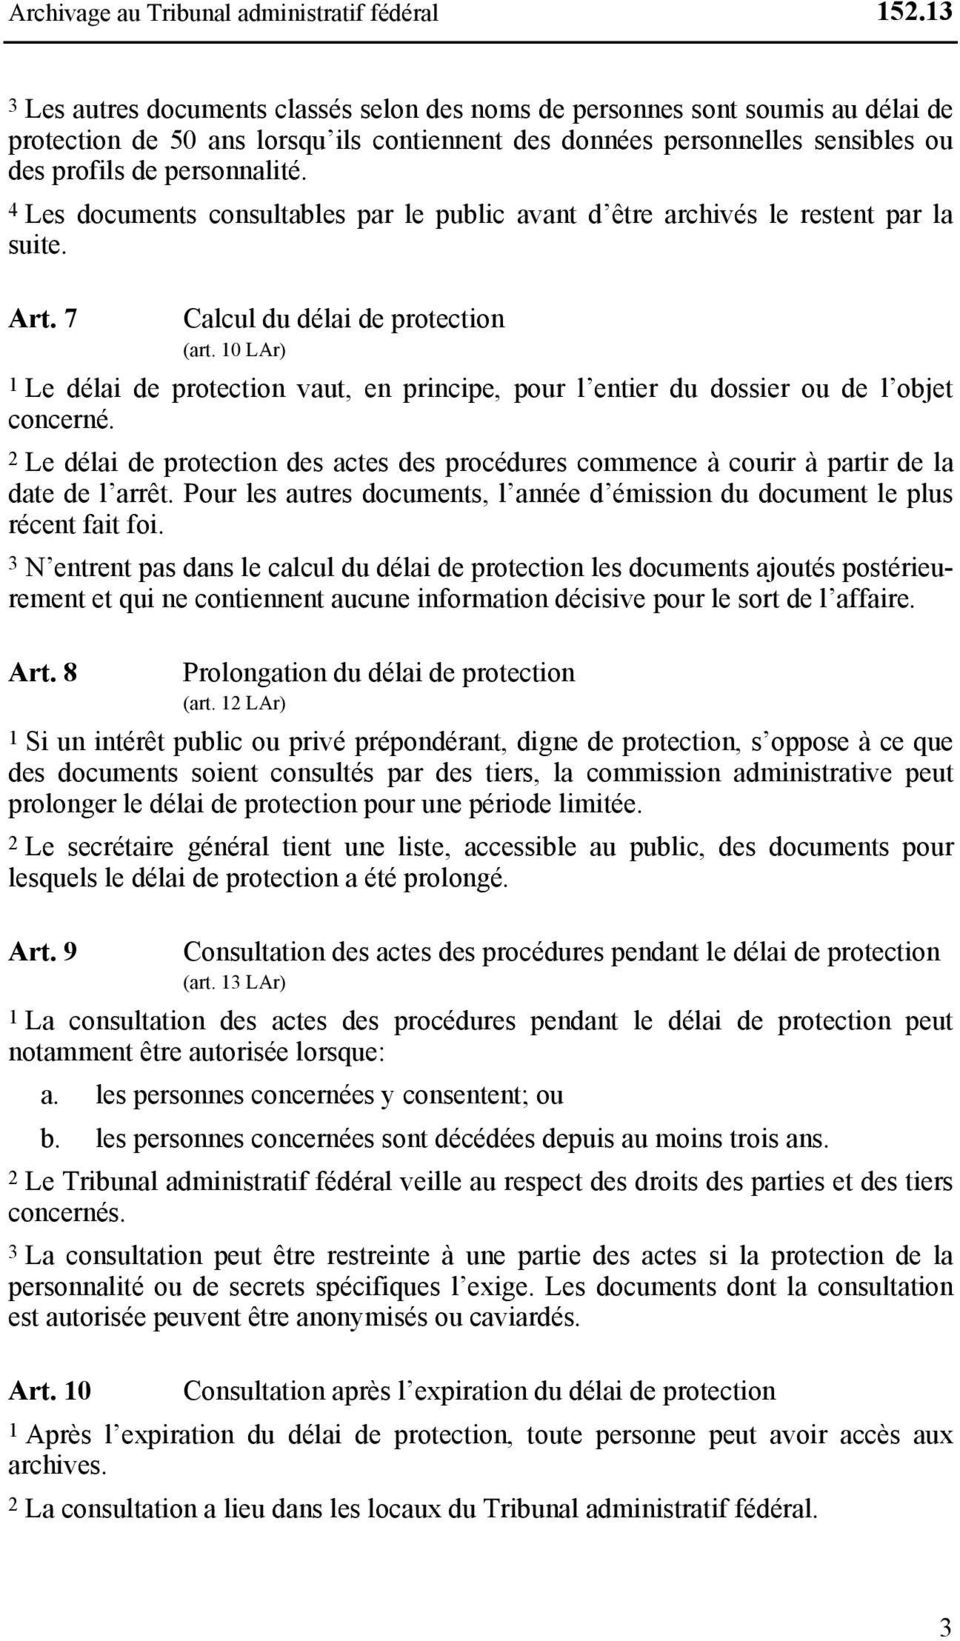 4 Les documents consultables par le public avant d être archivés le restent par la suite. Art. 7 Calcul du délai de protection (art.